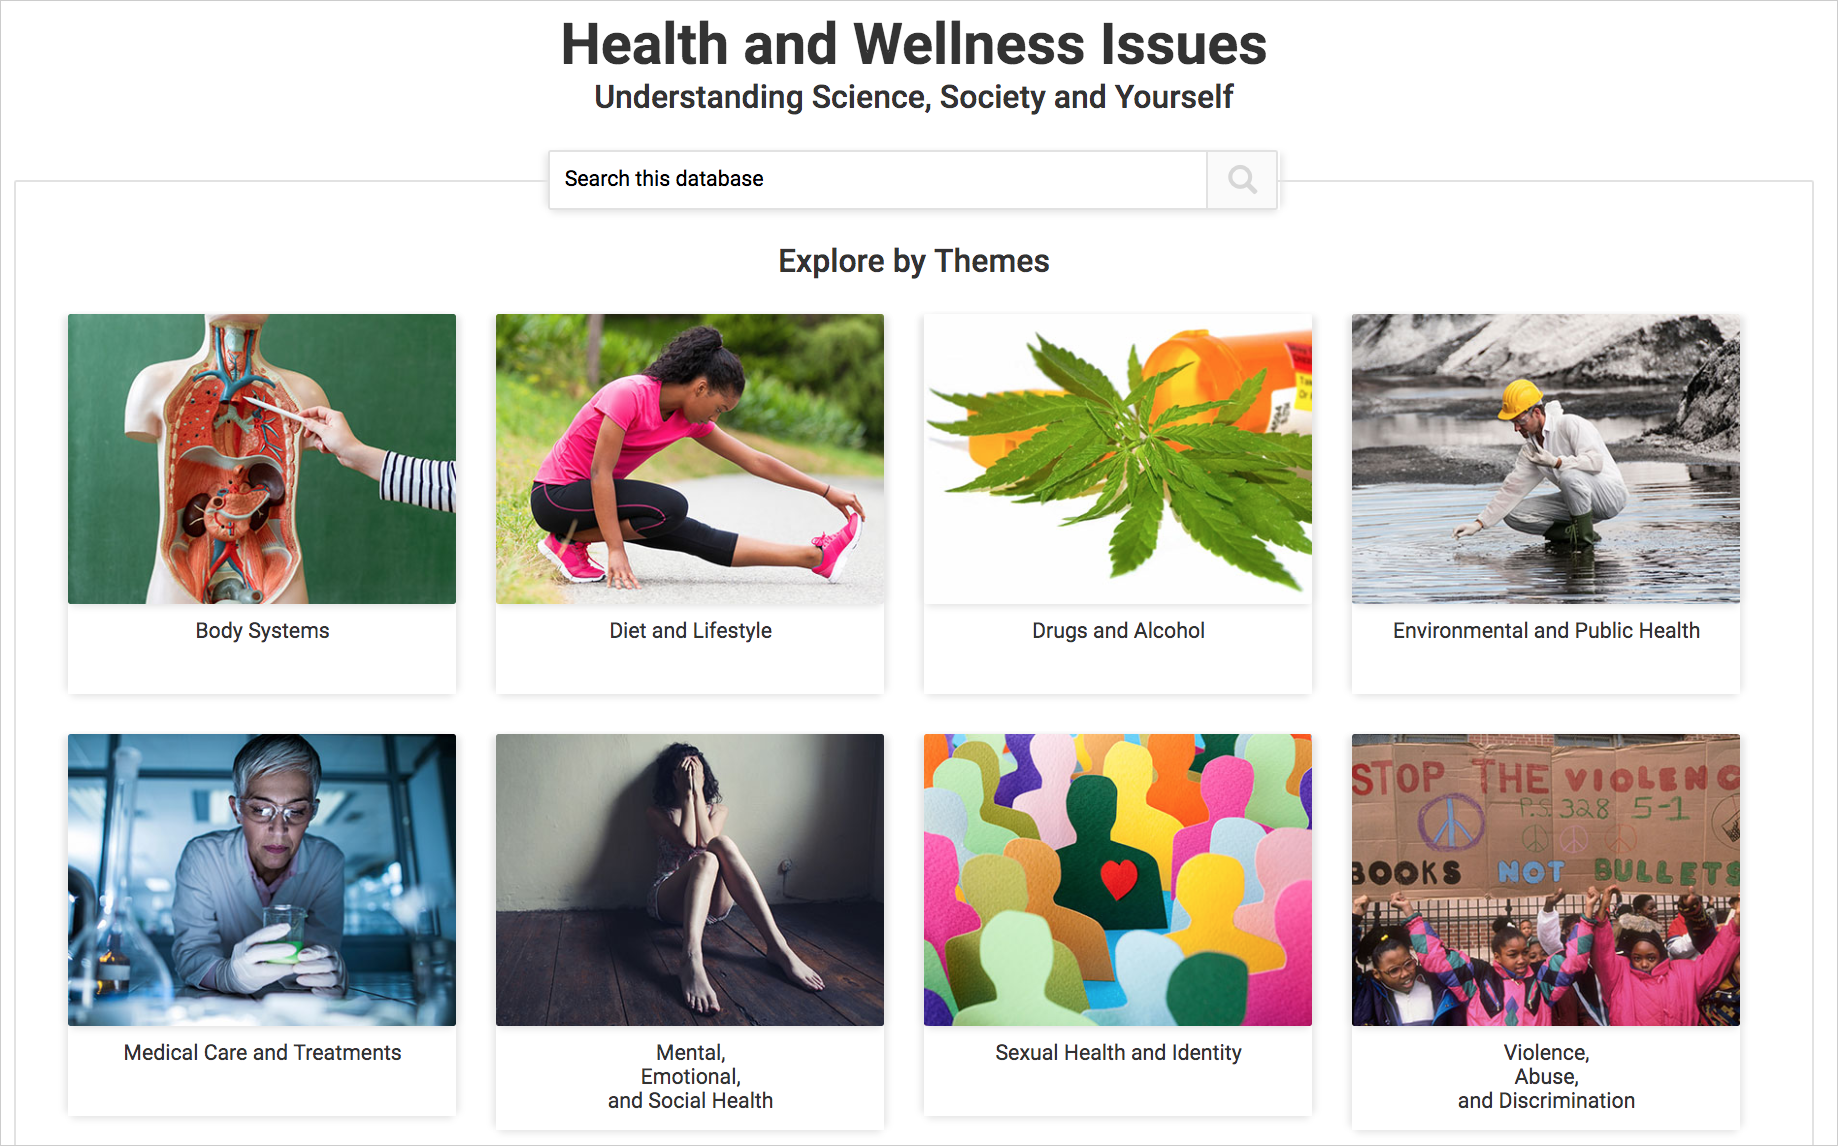 Health and Wellness Issues: Understanding Science, Society